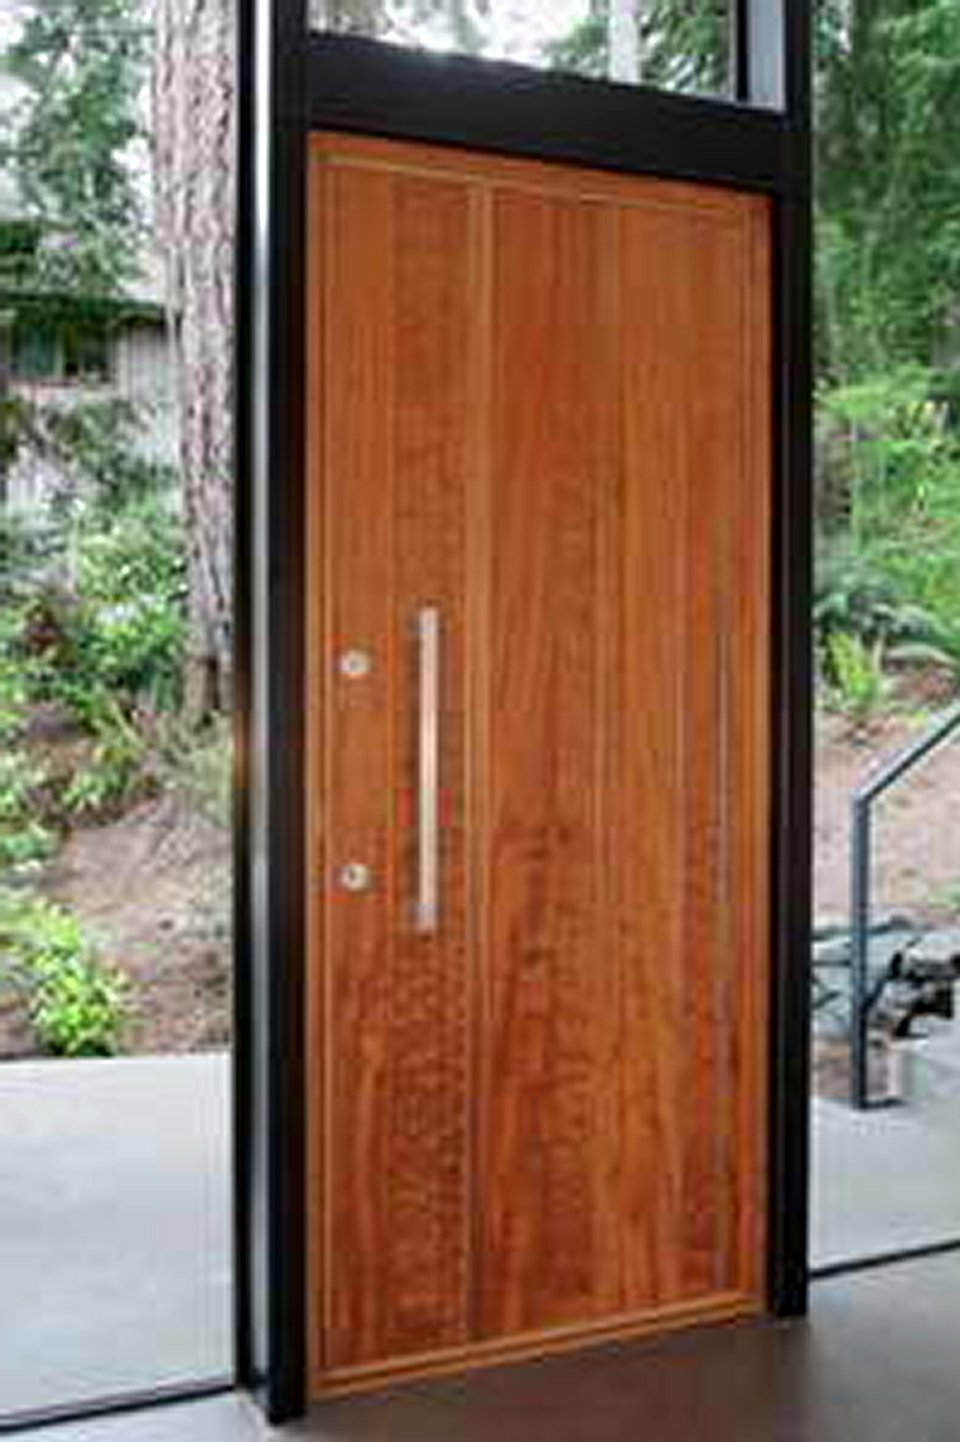 Oak exterior doors for sale home design ideas for Exterior wood doors for sale